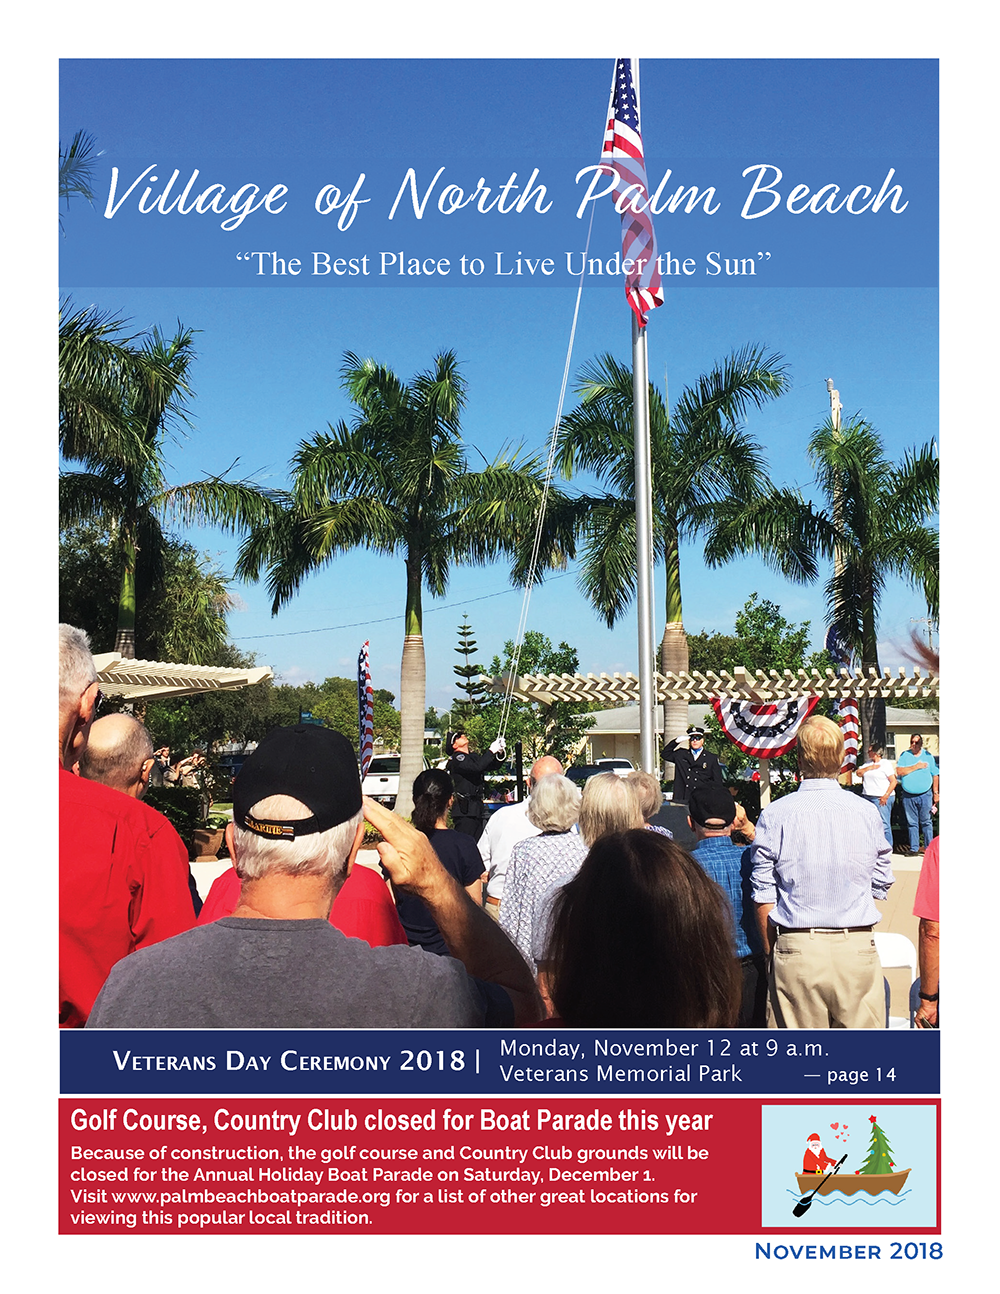 Image of cover of November 2018 Newsletter showing citizens saluting American flag